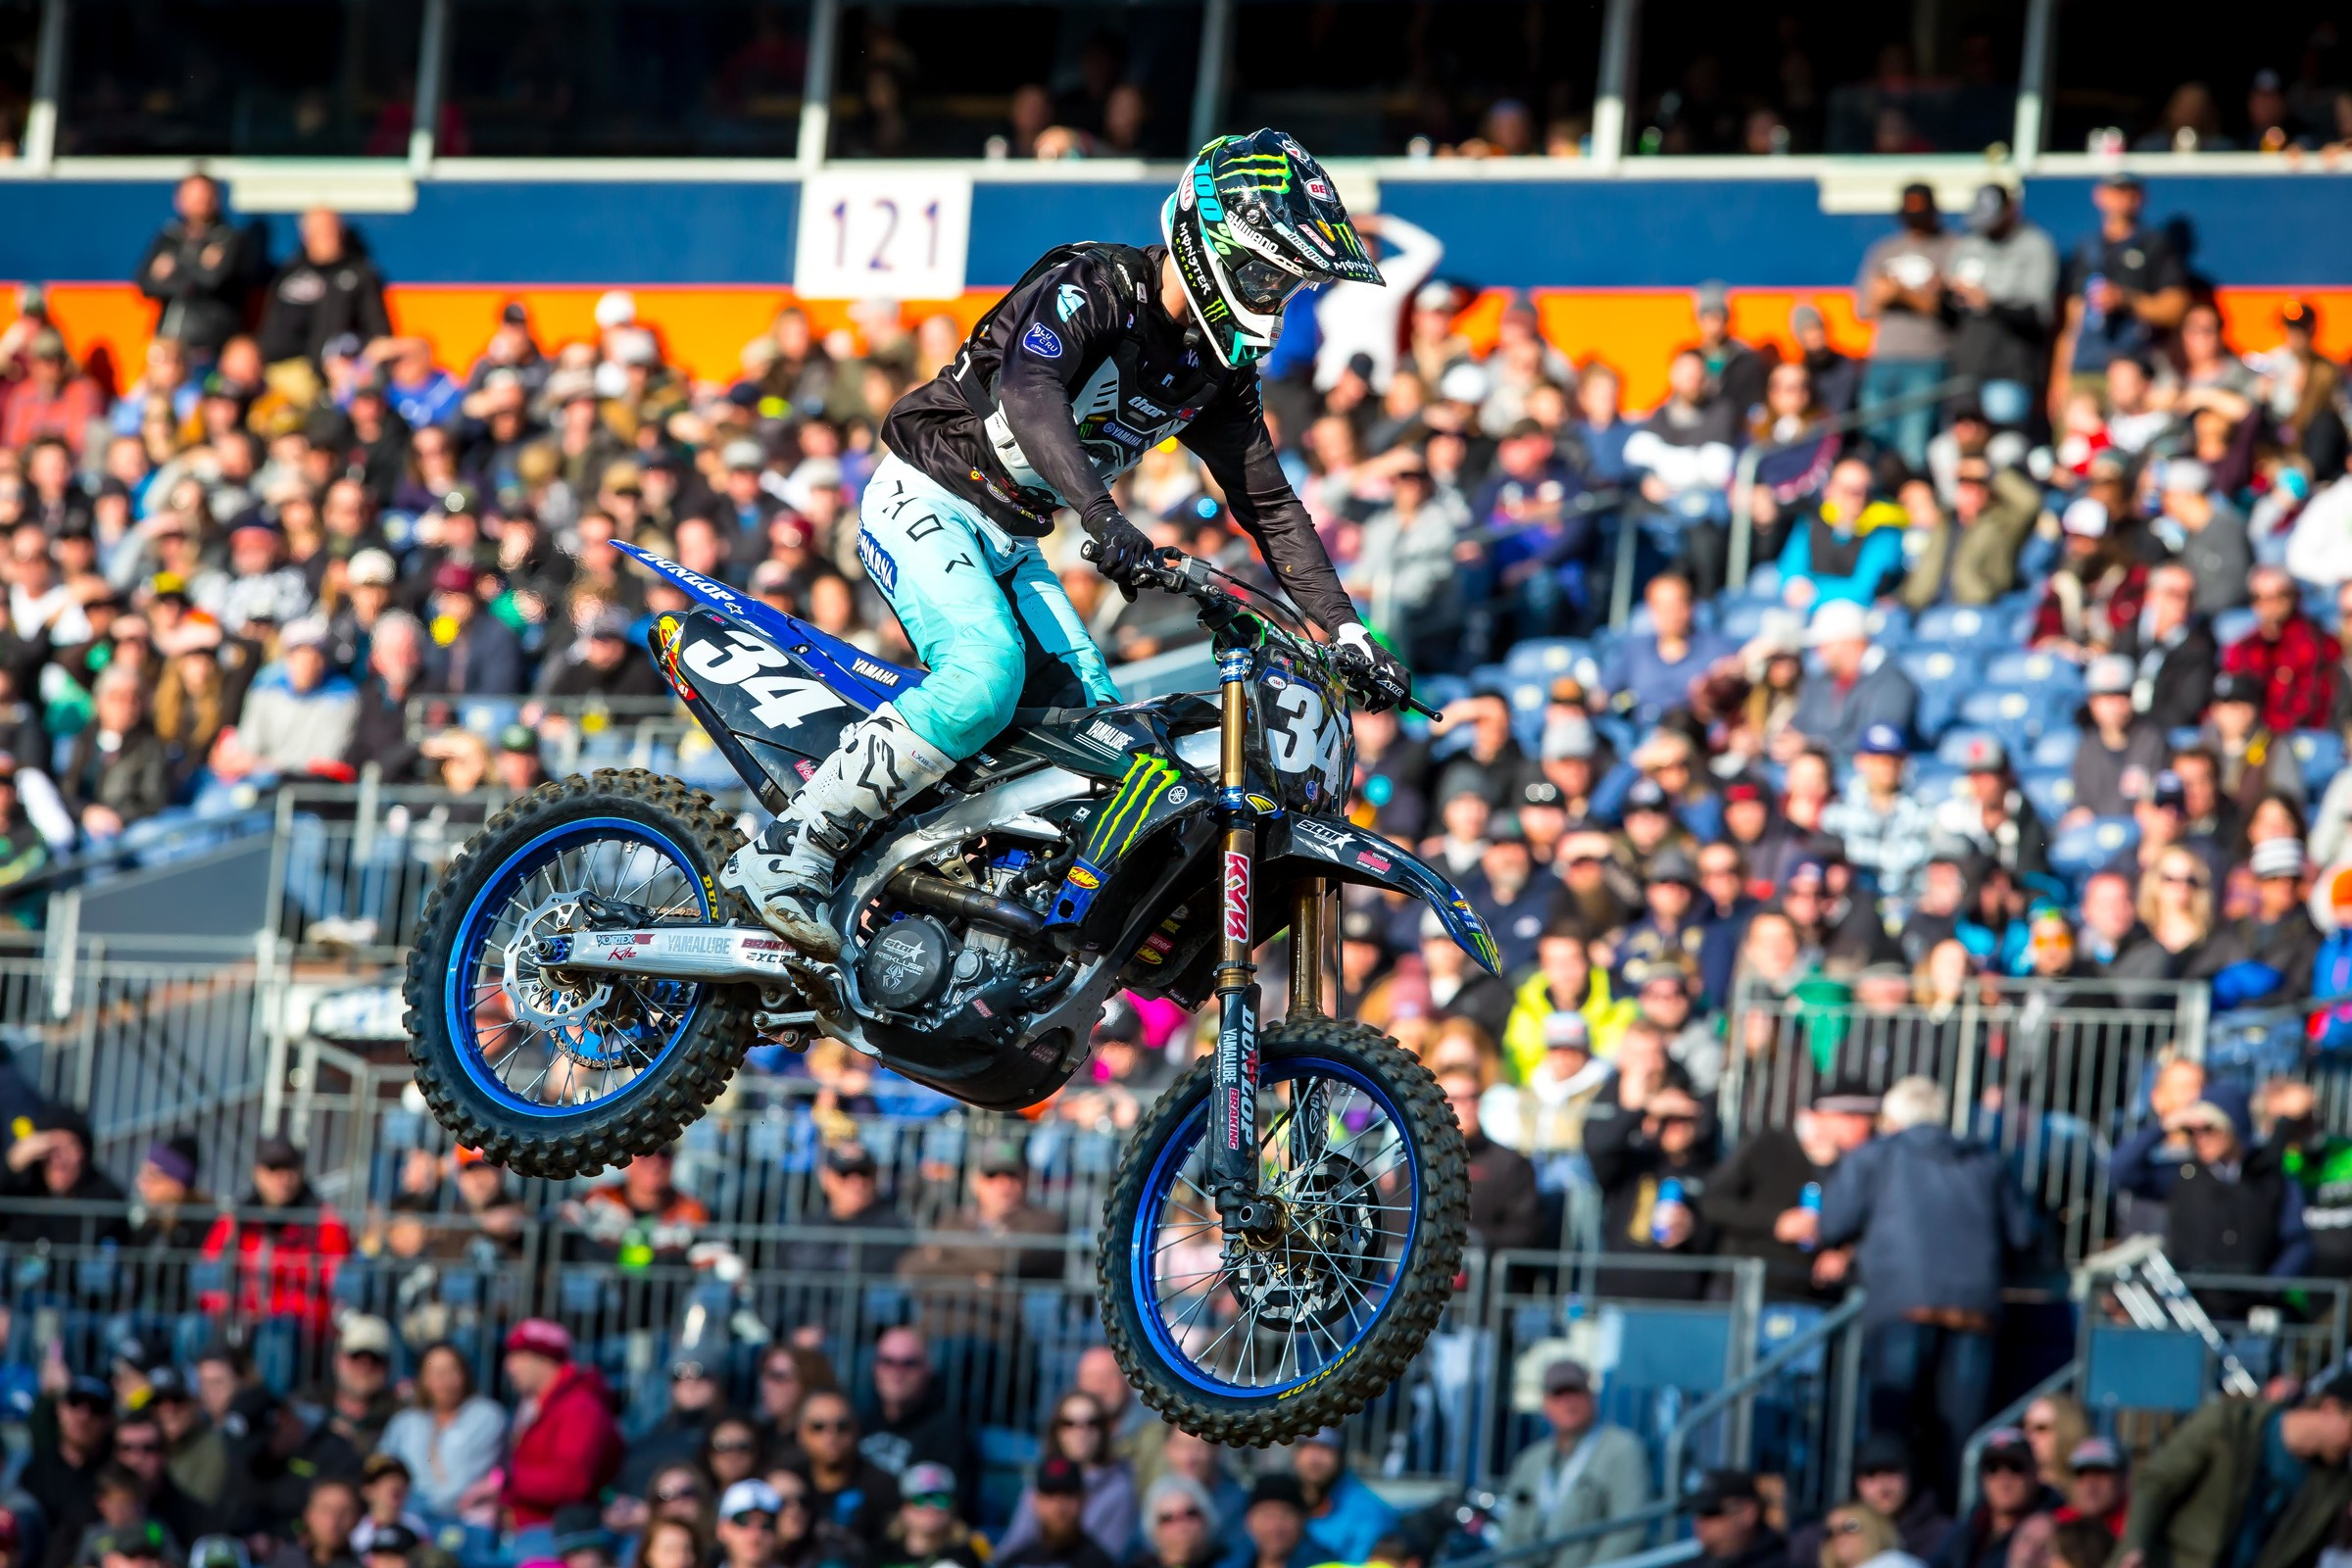 Ferrandis' two-race win streak is history. He rode well to get second but knew he couldn't afford to lose points to Cianciarulo.